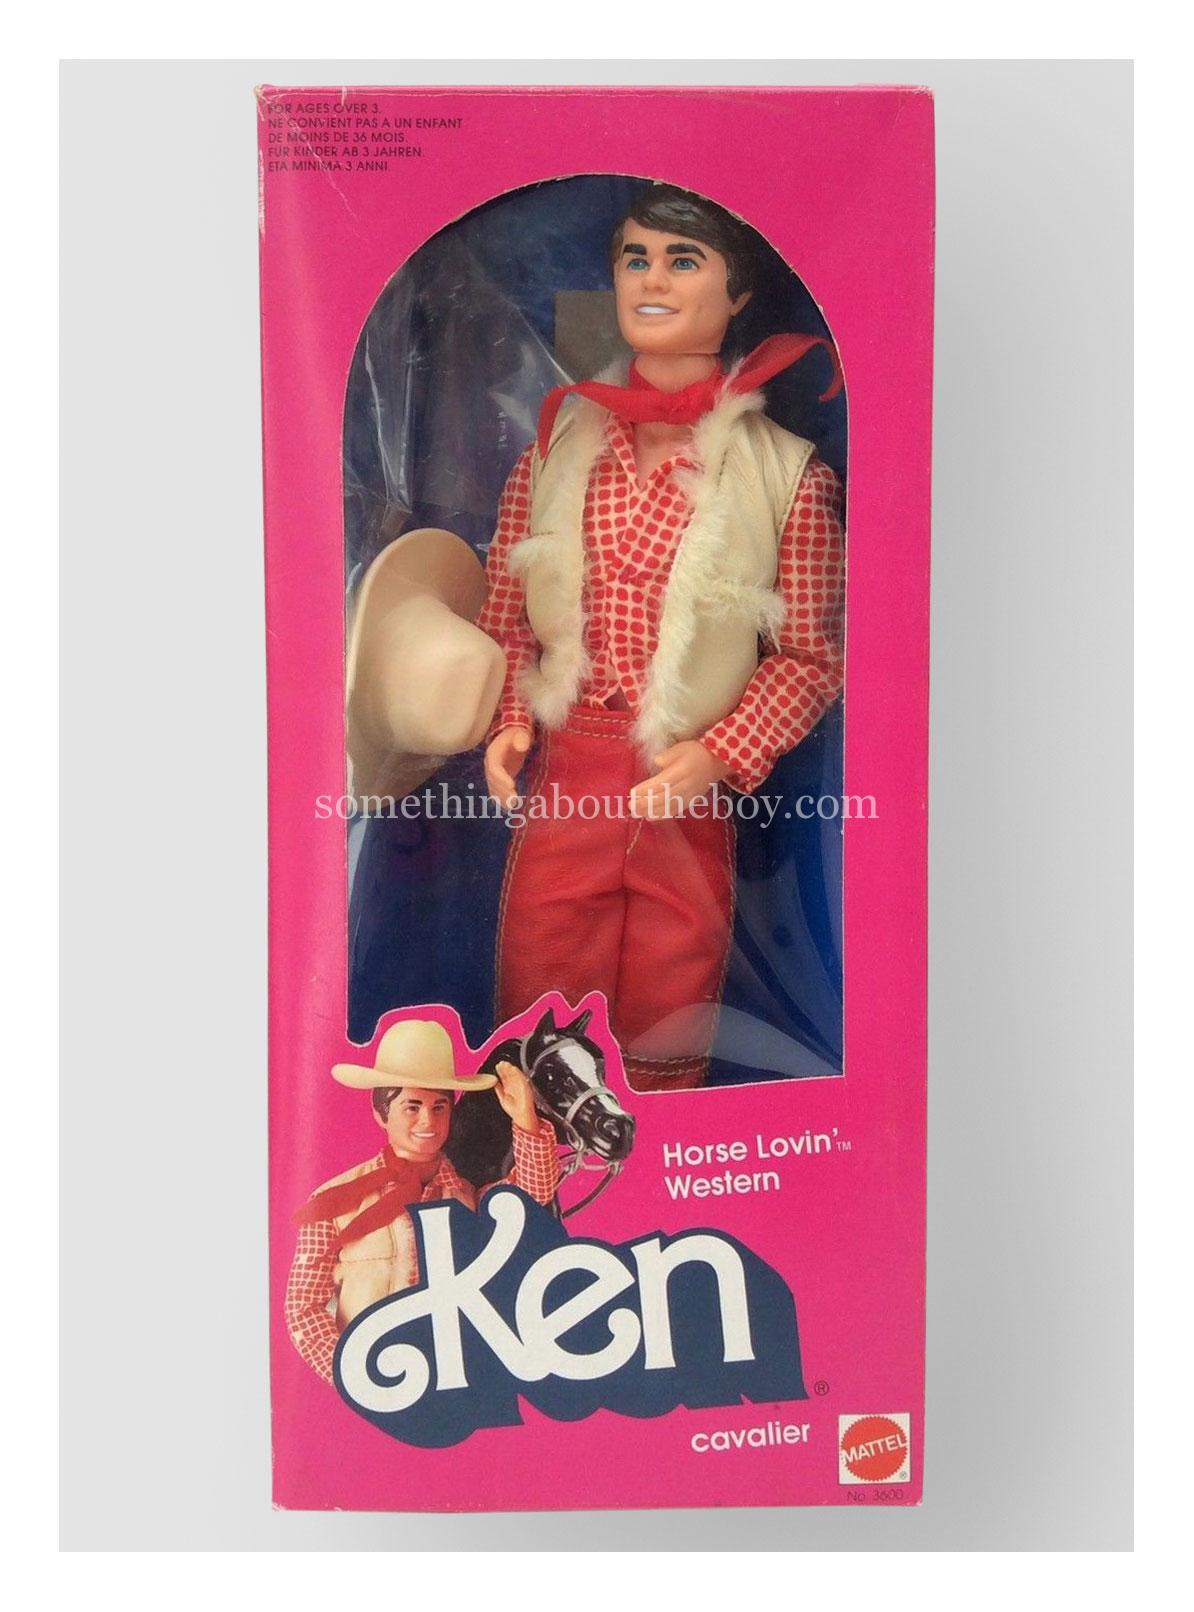 1983 #3600 Horse Lovin' Ken (European version)